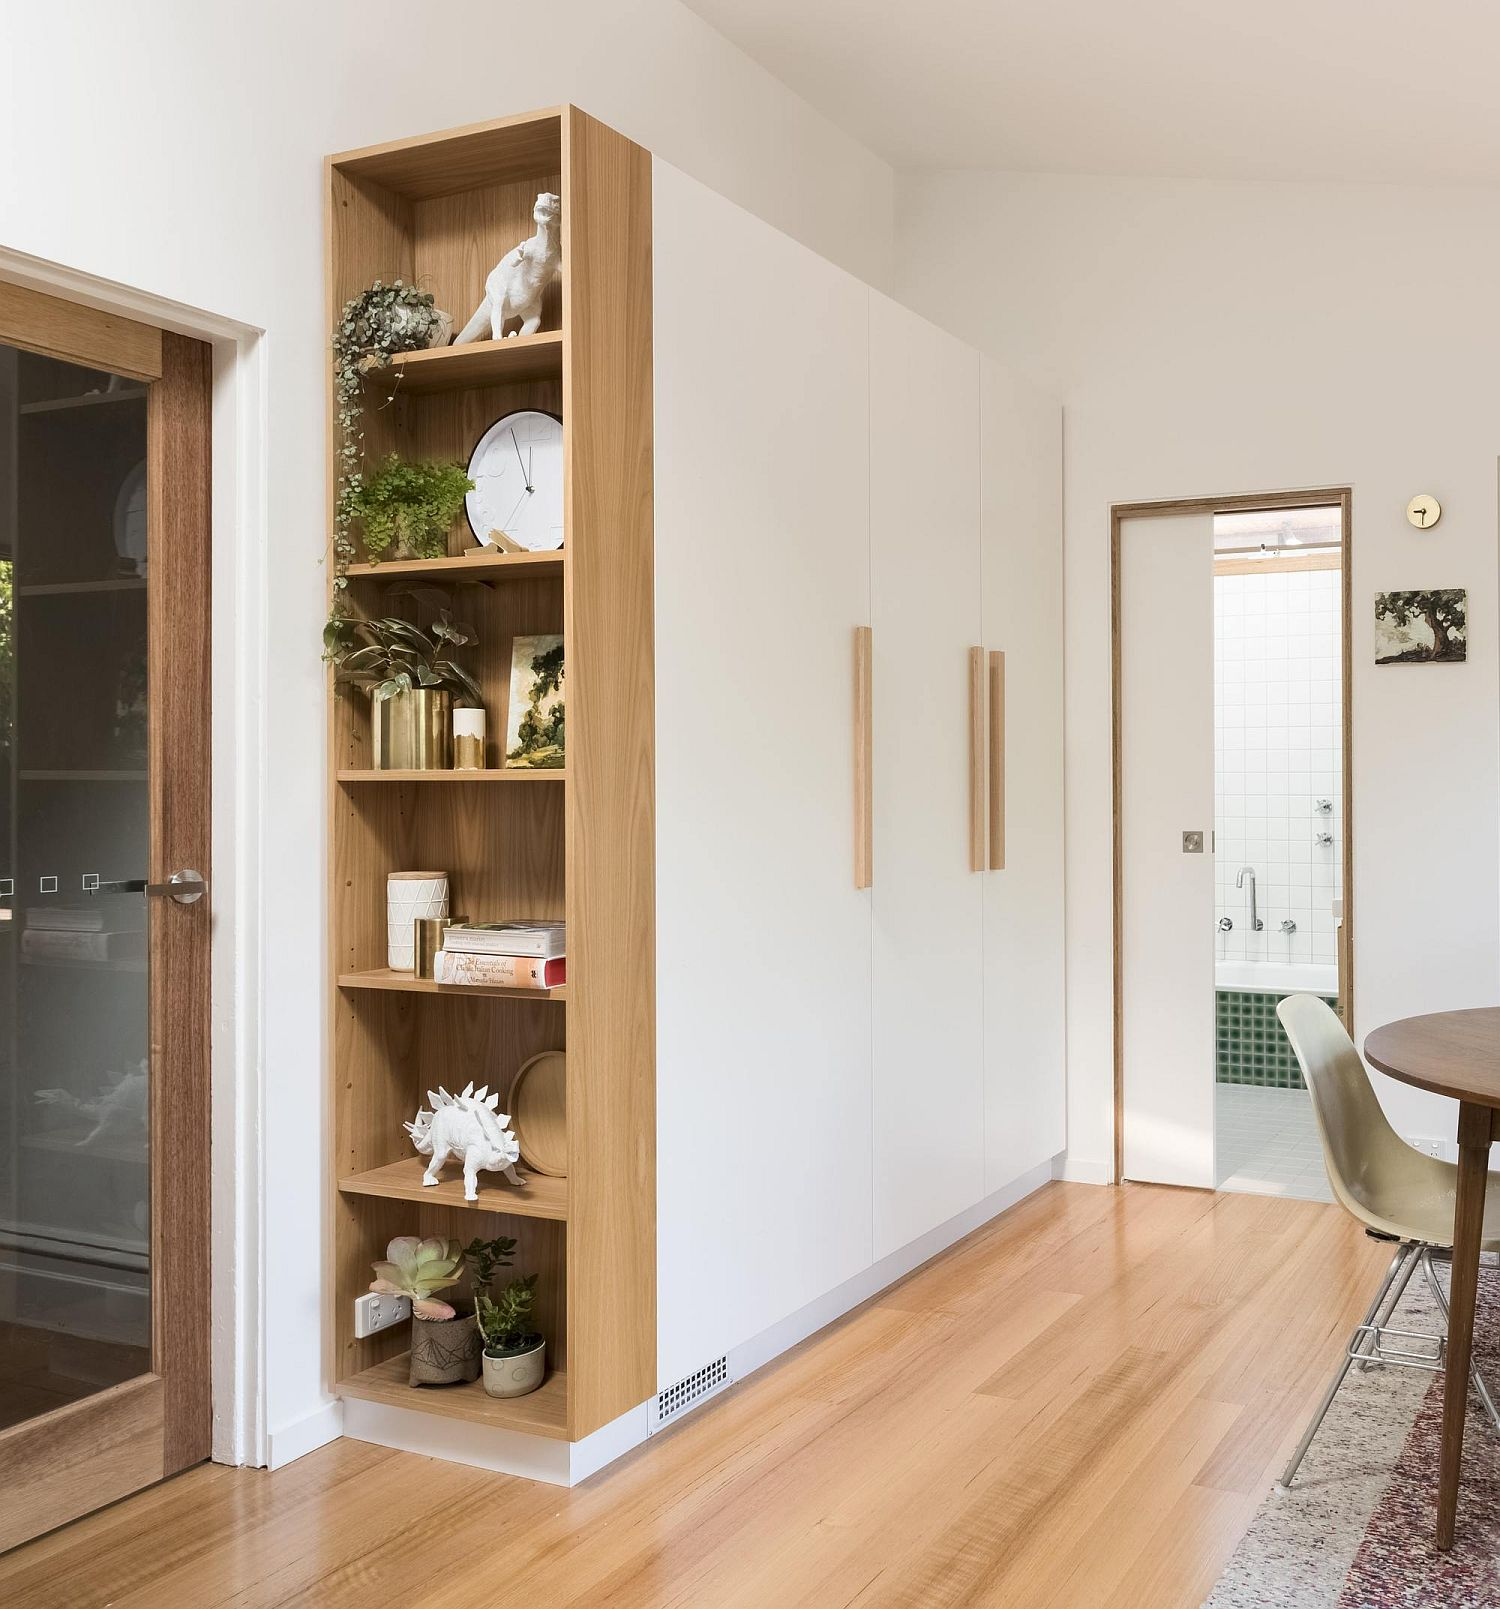 Open wooden shelf next to the large cabinet in white